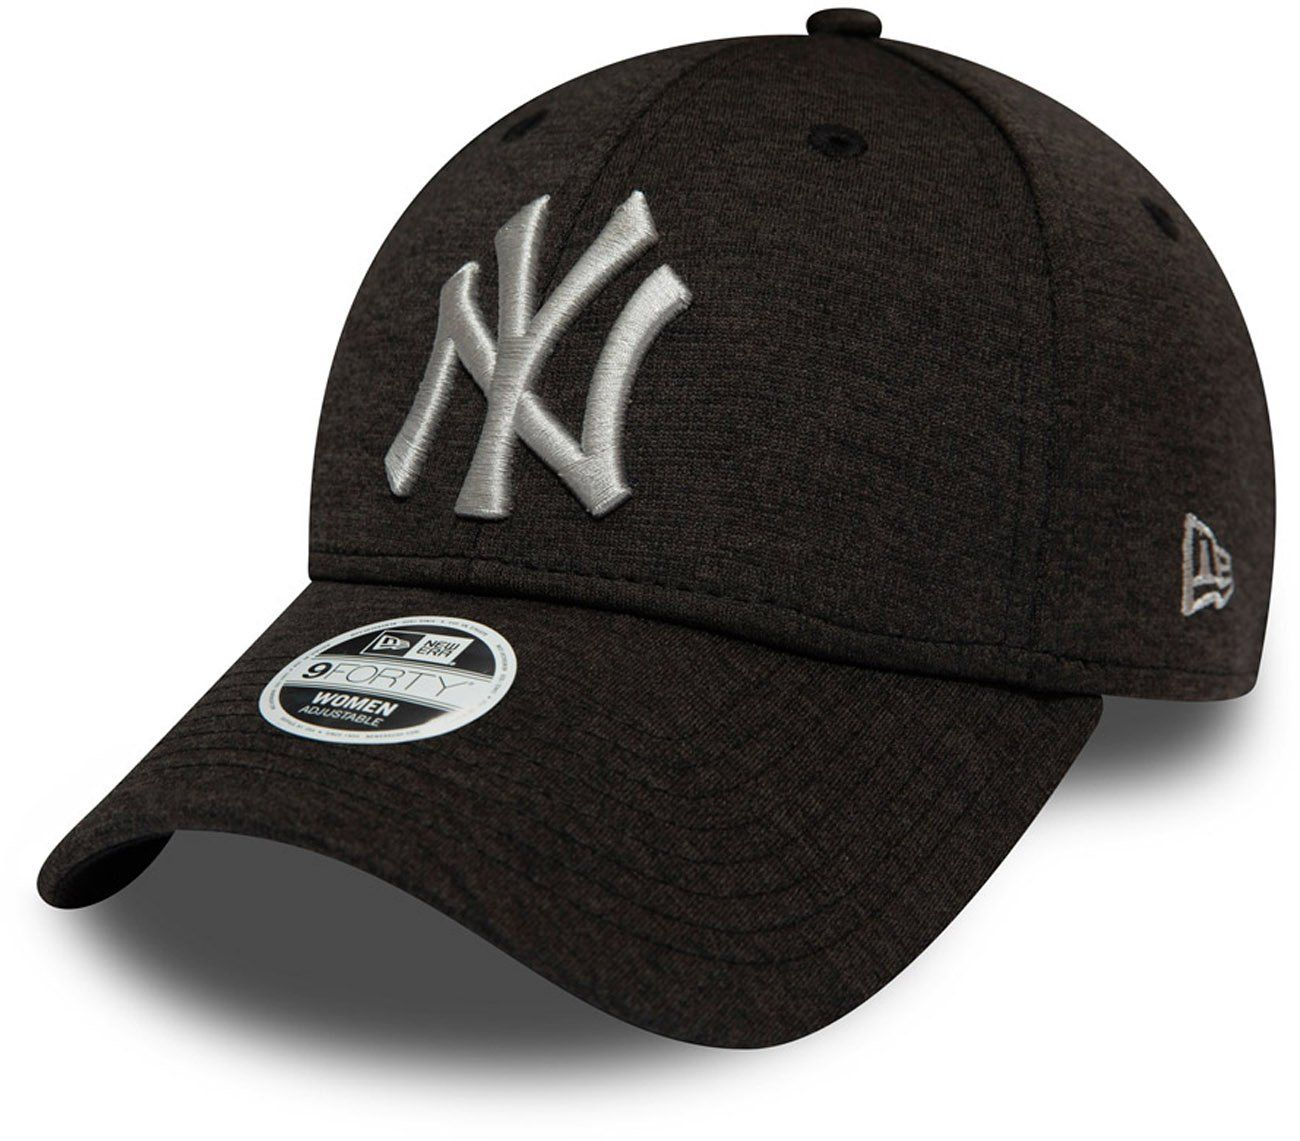 2785cb87f NY Yankees Womens New Era 940 Shadow Tech Black Baseball Cap in 2019 ...